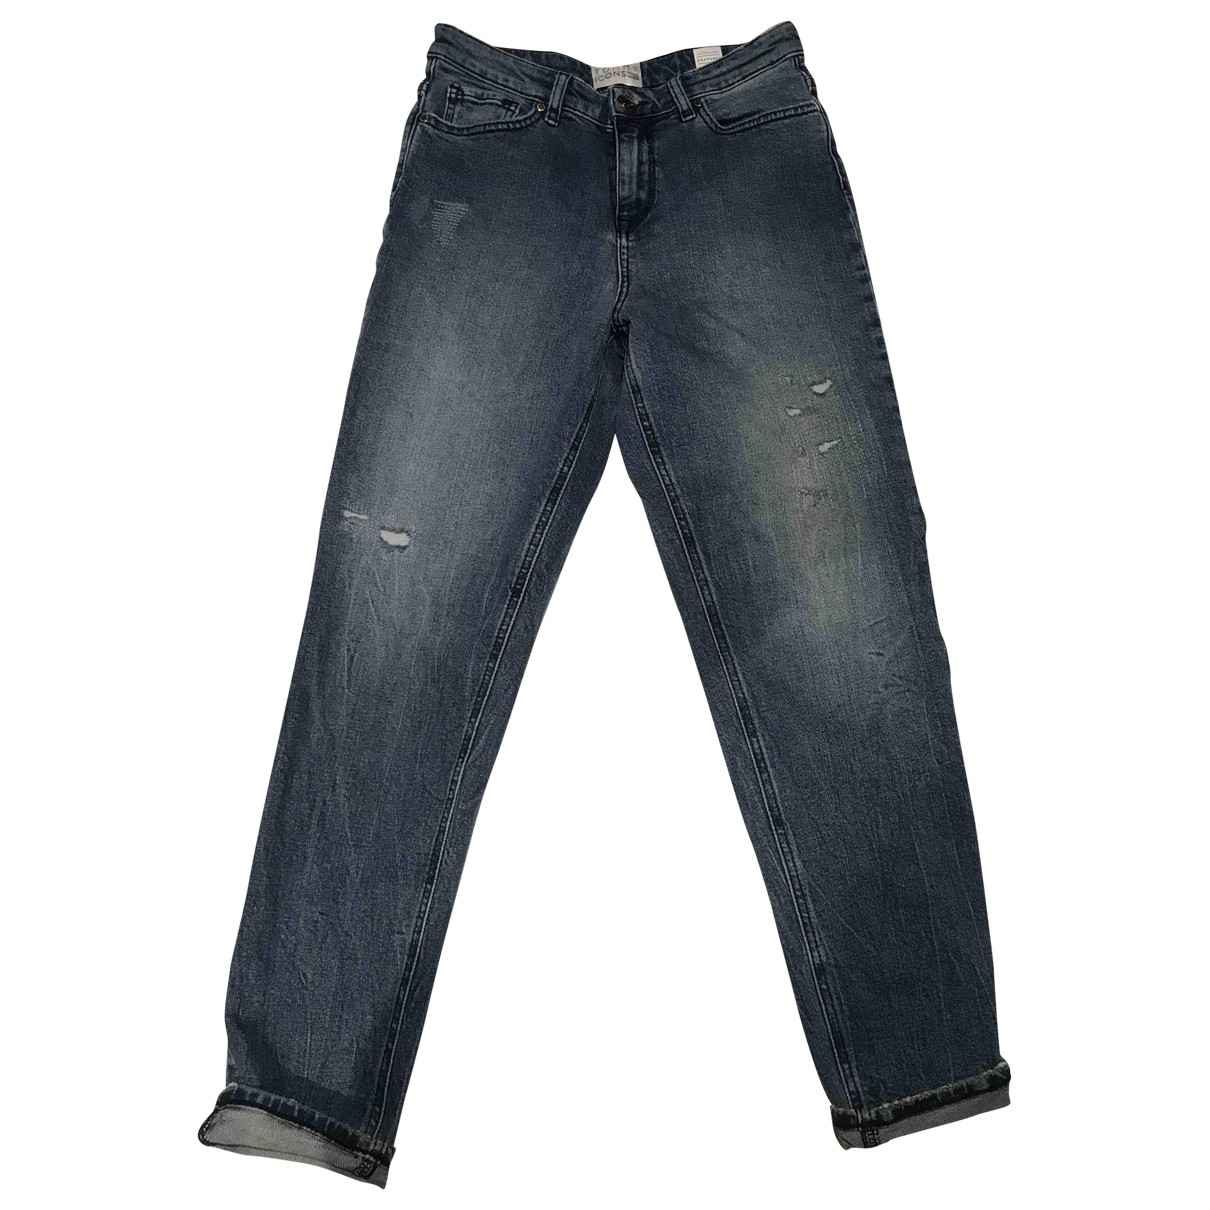 Tommy Hilfiger \N Blue Denim - Jeans Jeans for Women 29 US